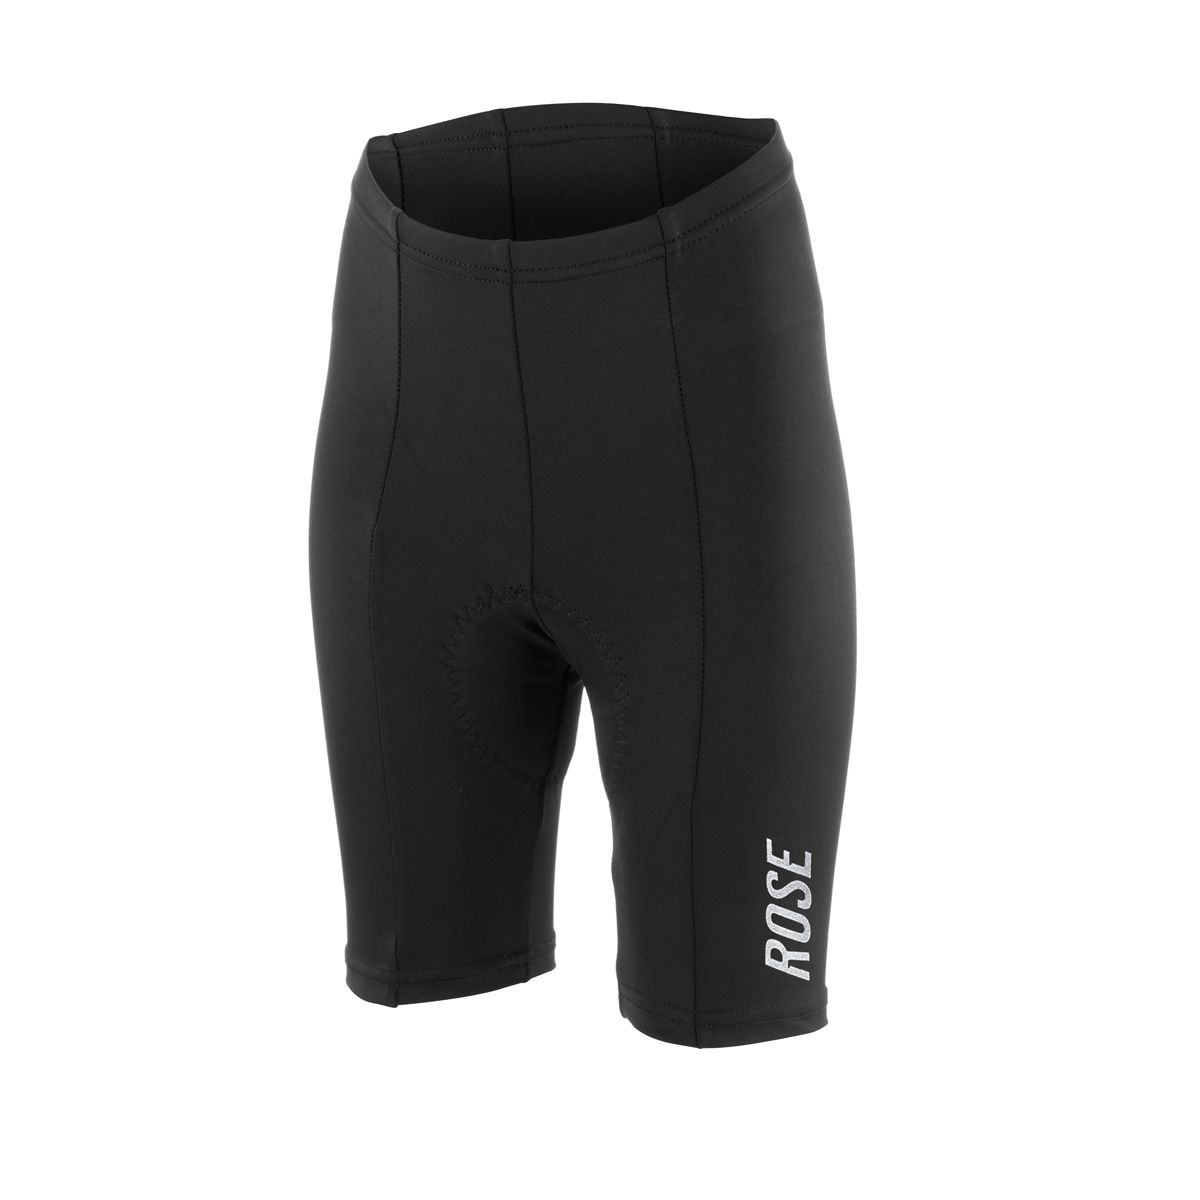 kids' cycling shorts